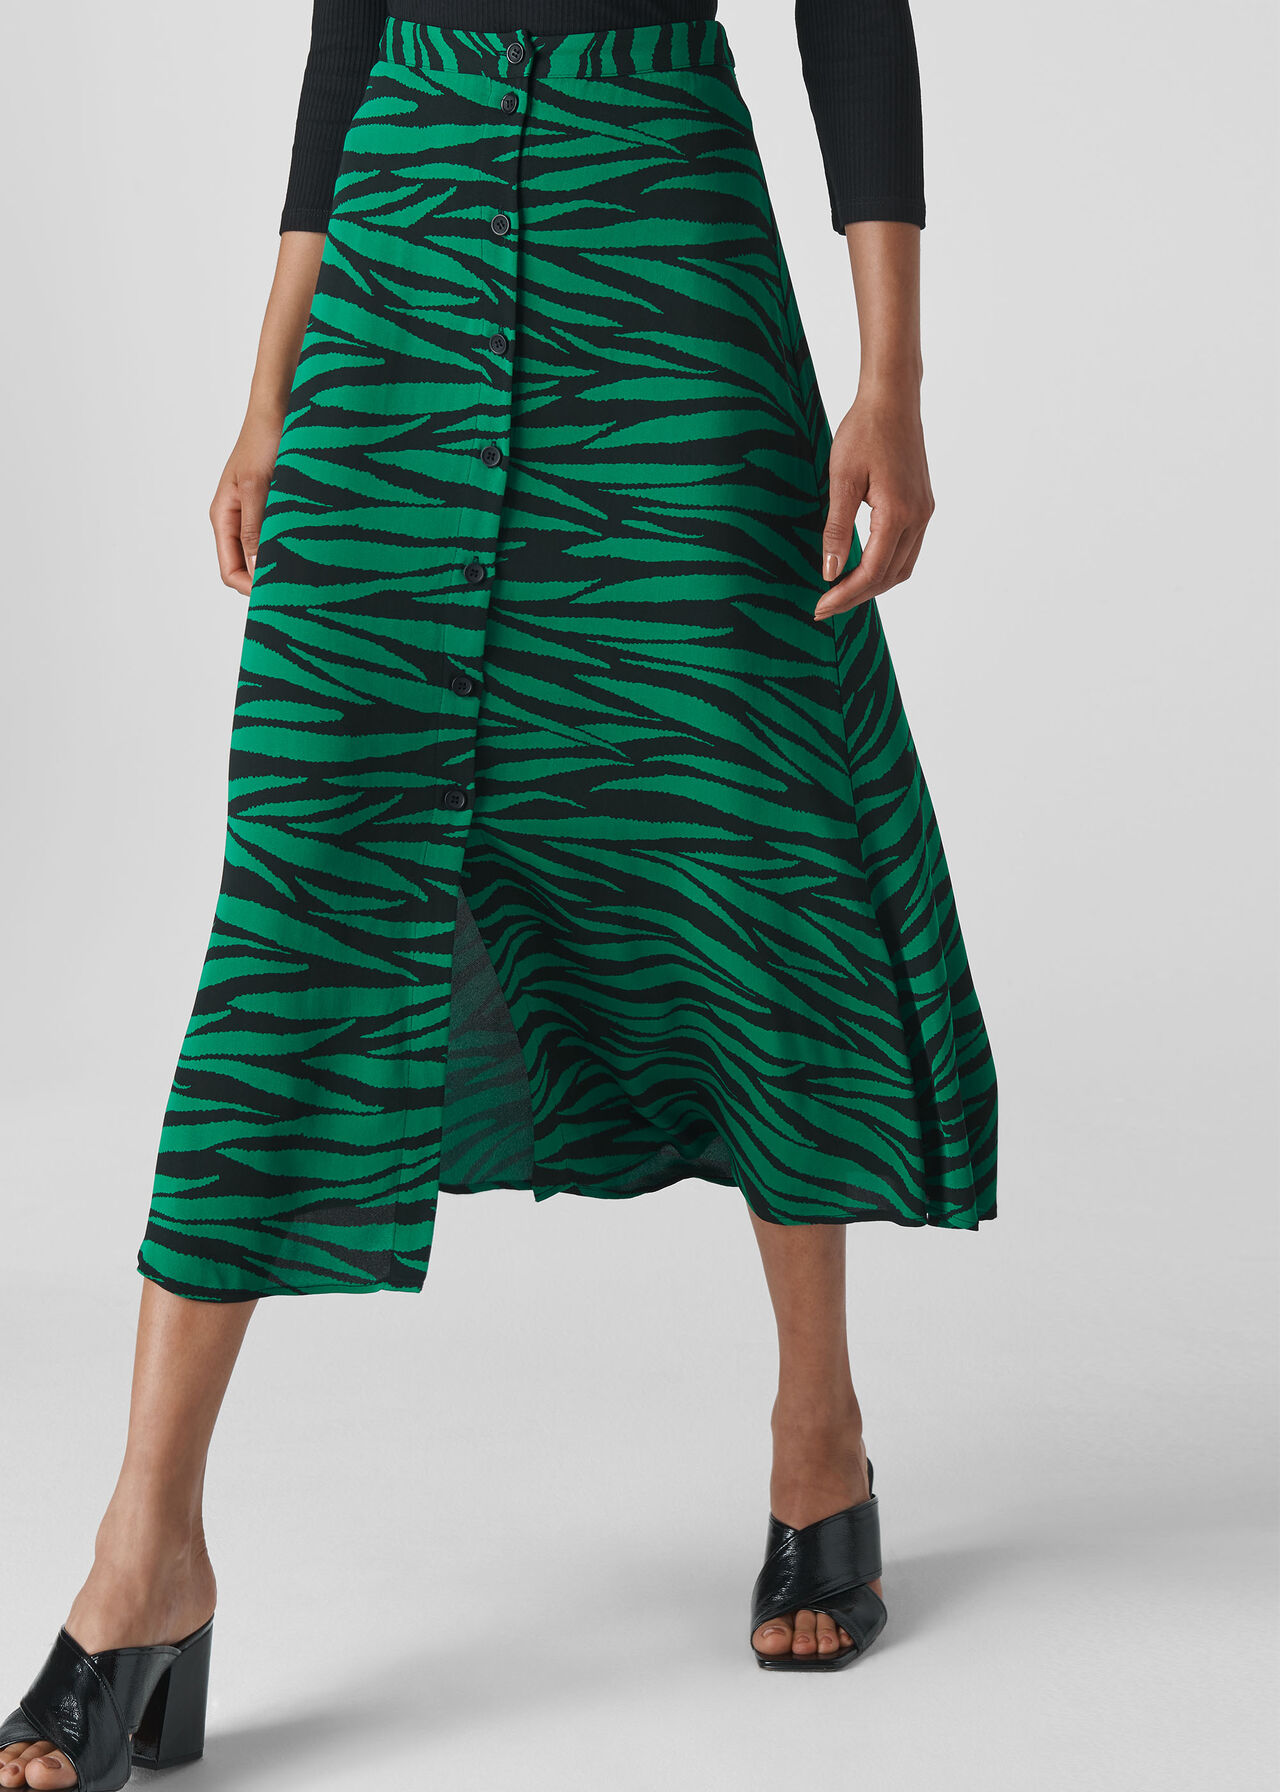 Tiger Print Button Front Skirt Green/Multi